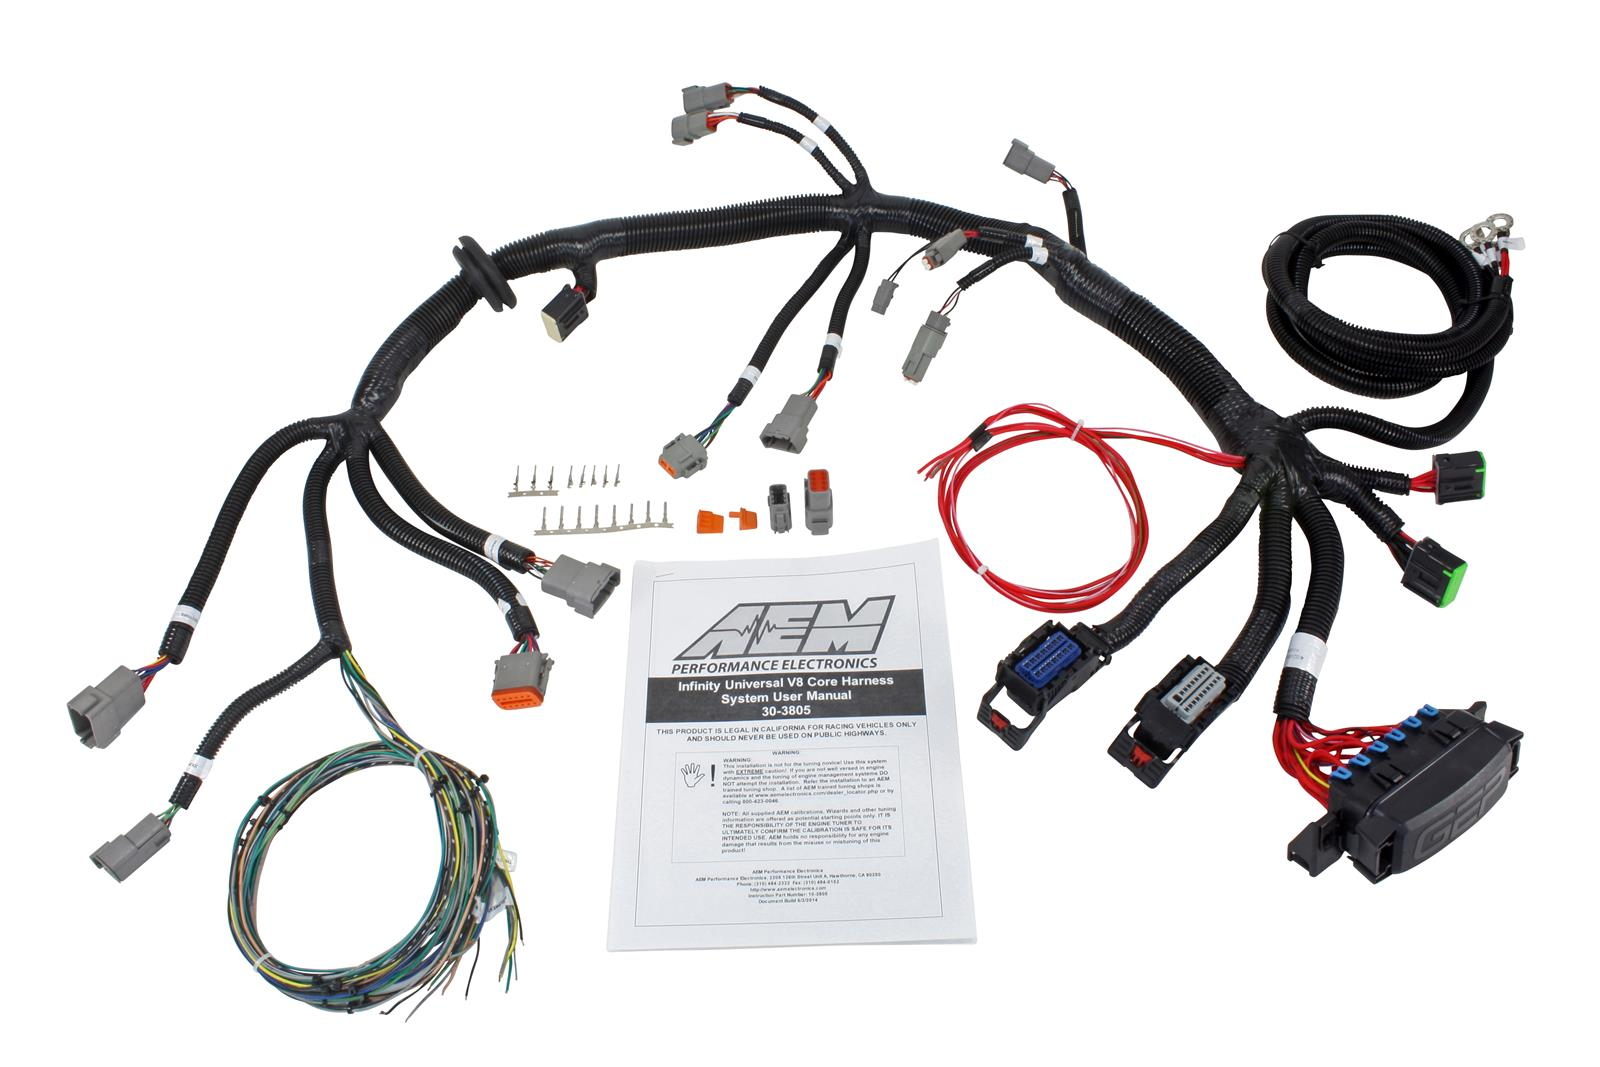 AEM Electronics Infinity Wiring Harnesses 30-3805 - Free Shipping on Orders  Over $99 at Summit Racing